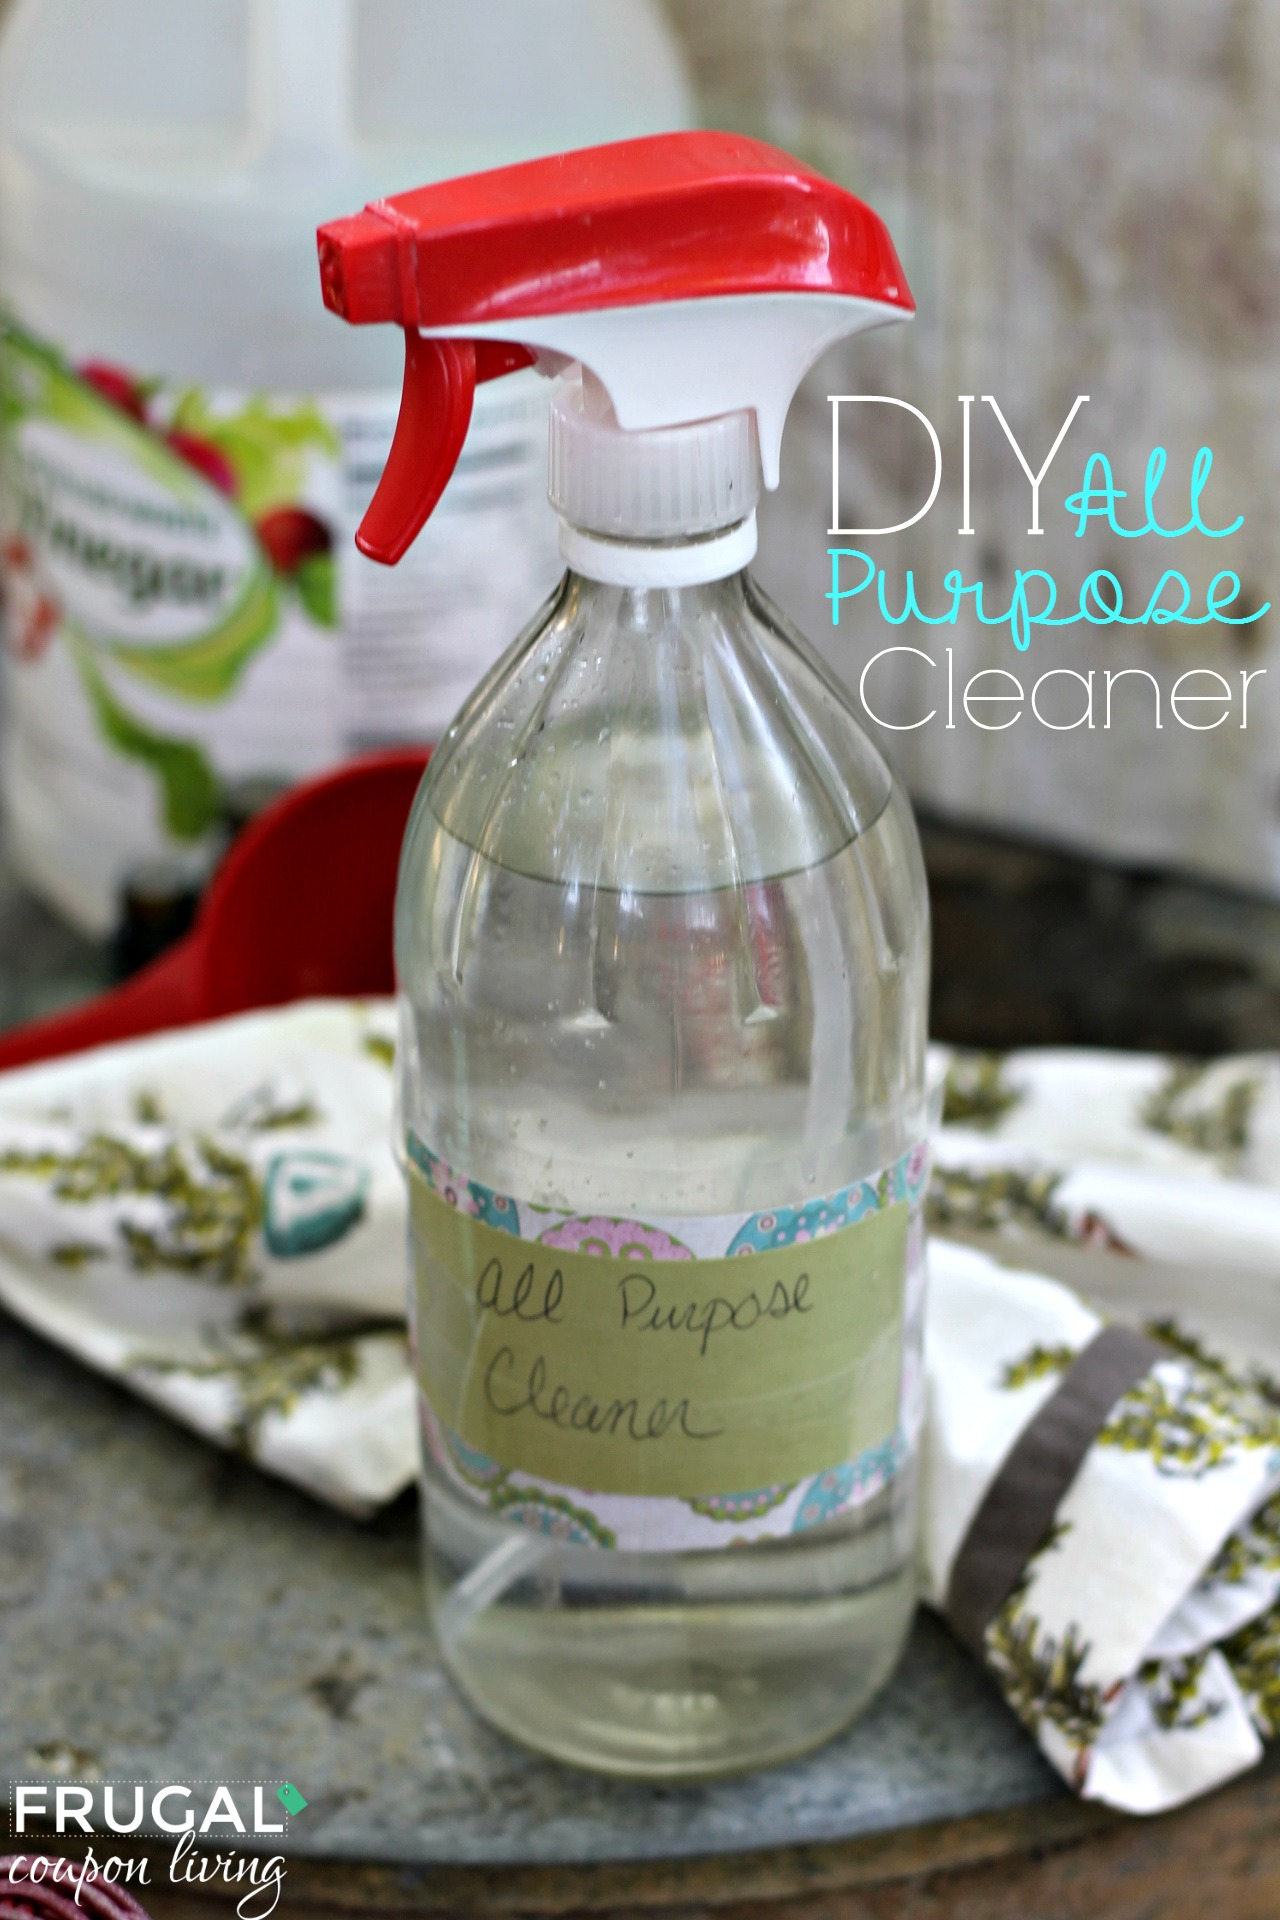 All Purpose Cleaner Diy Clean Ingredients In Your Home